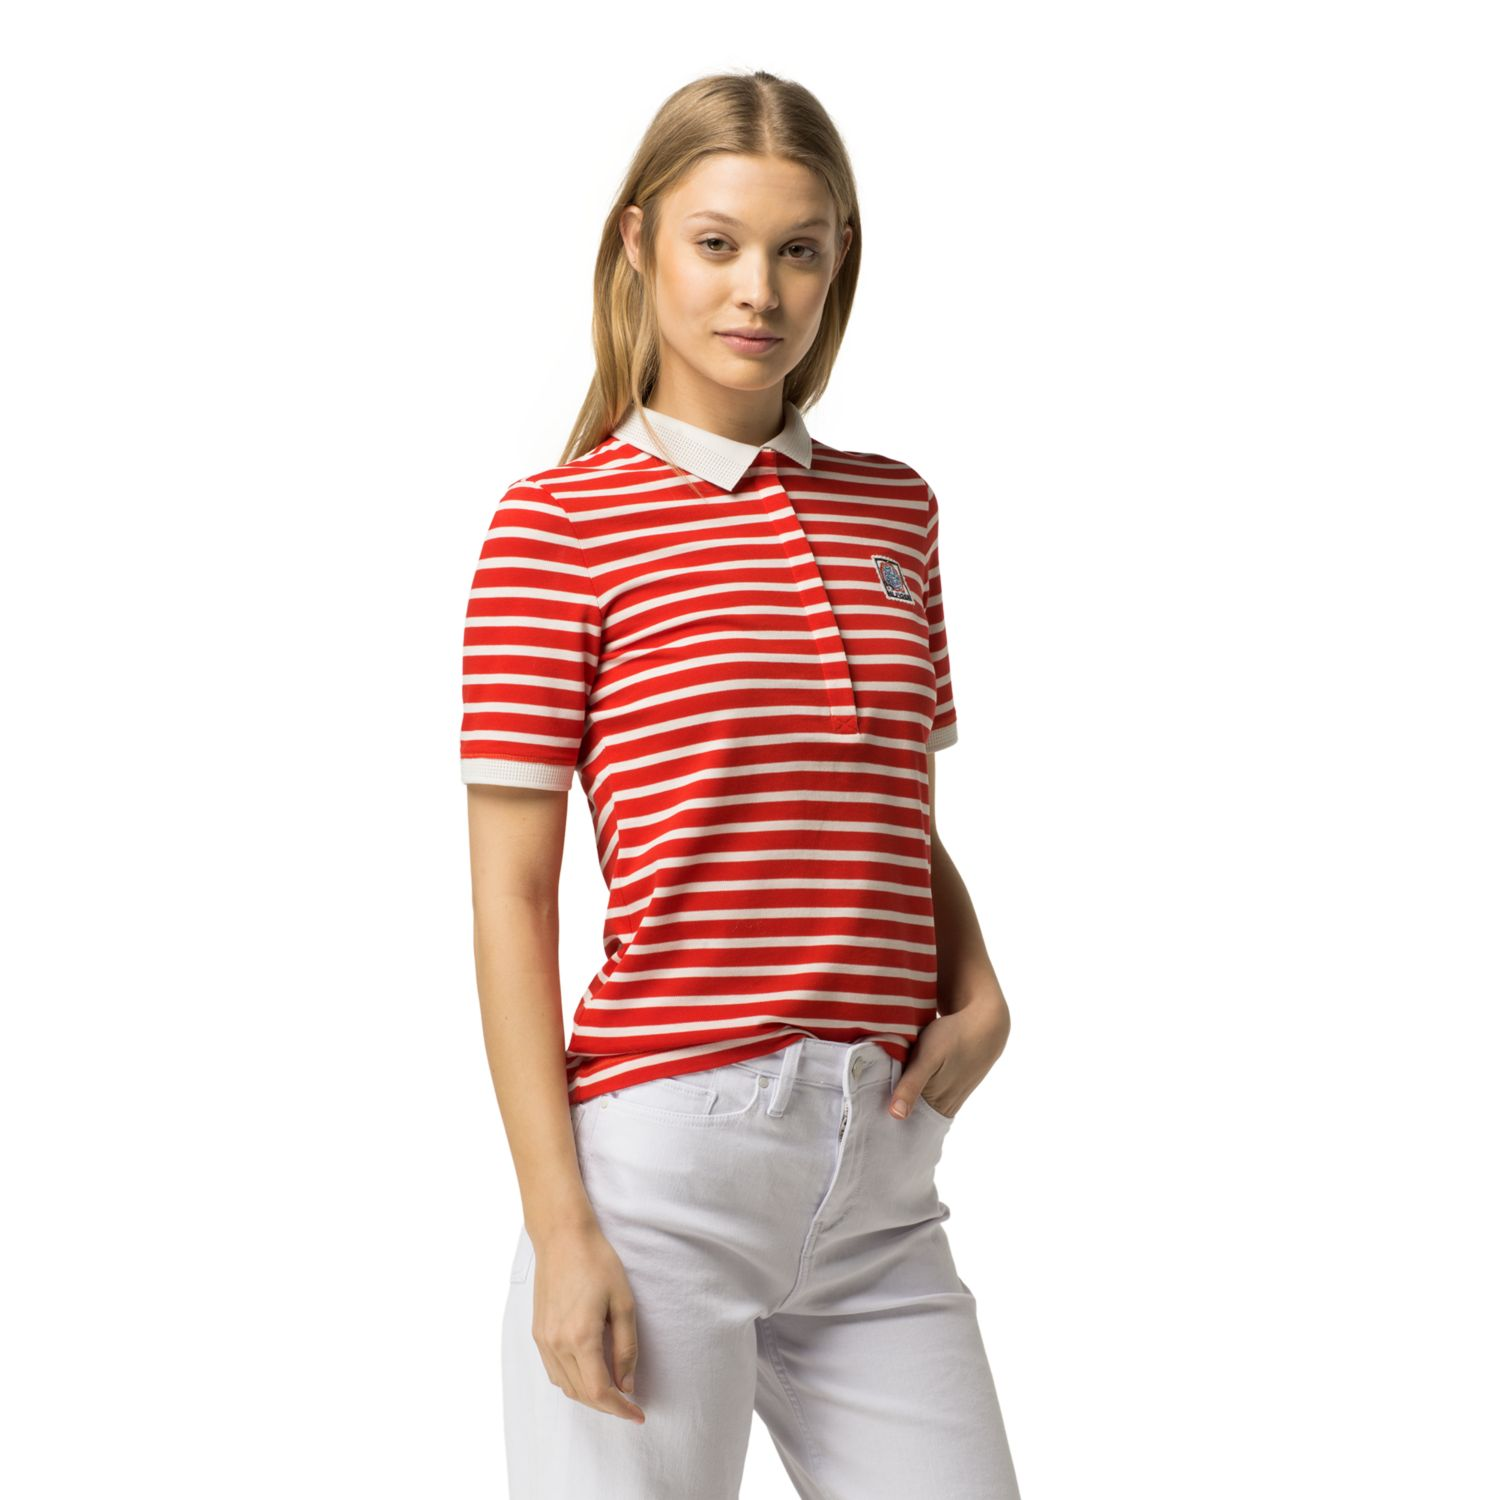 30% Off Red White and Blue Sty...